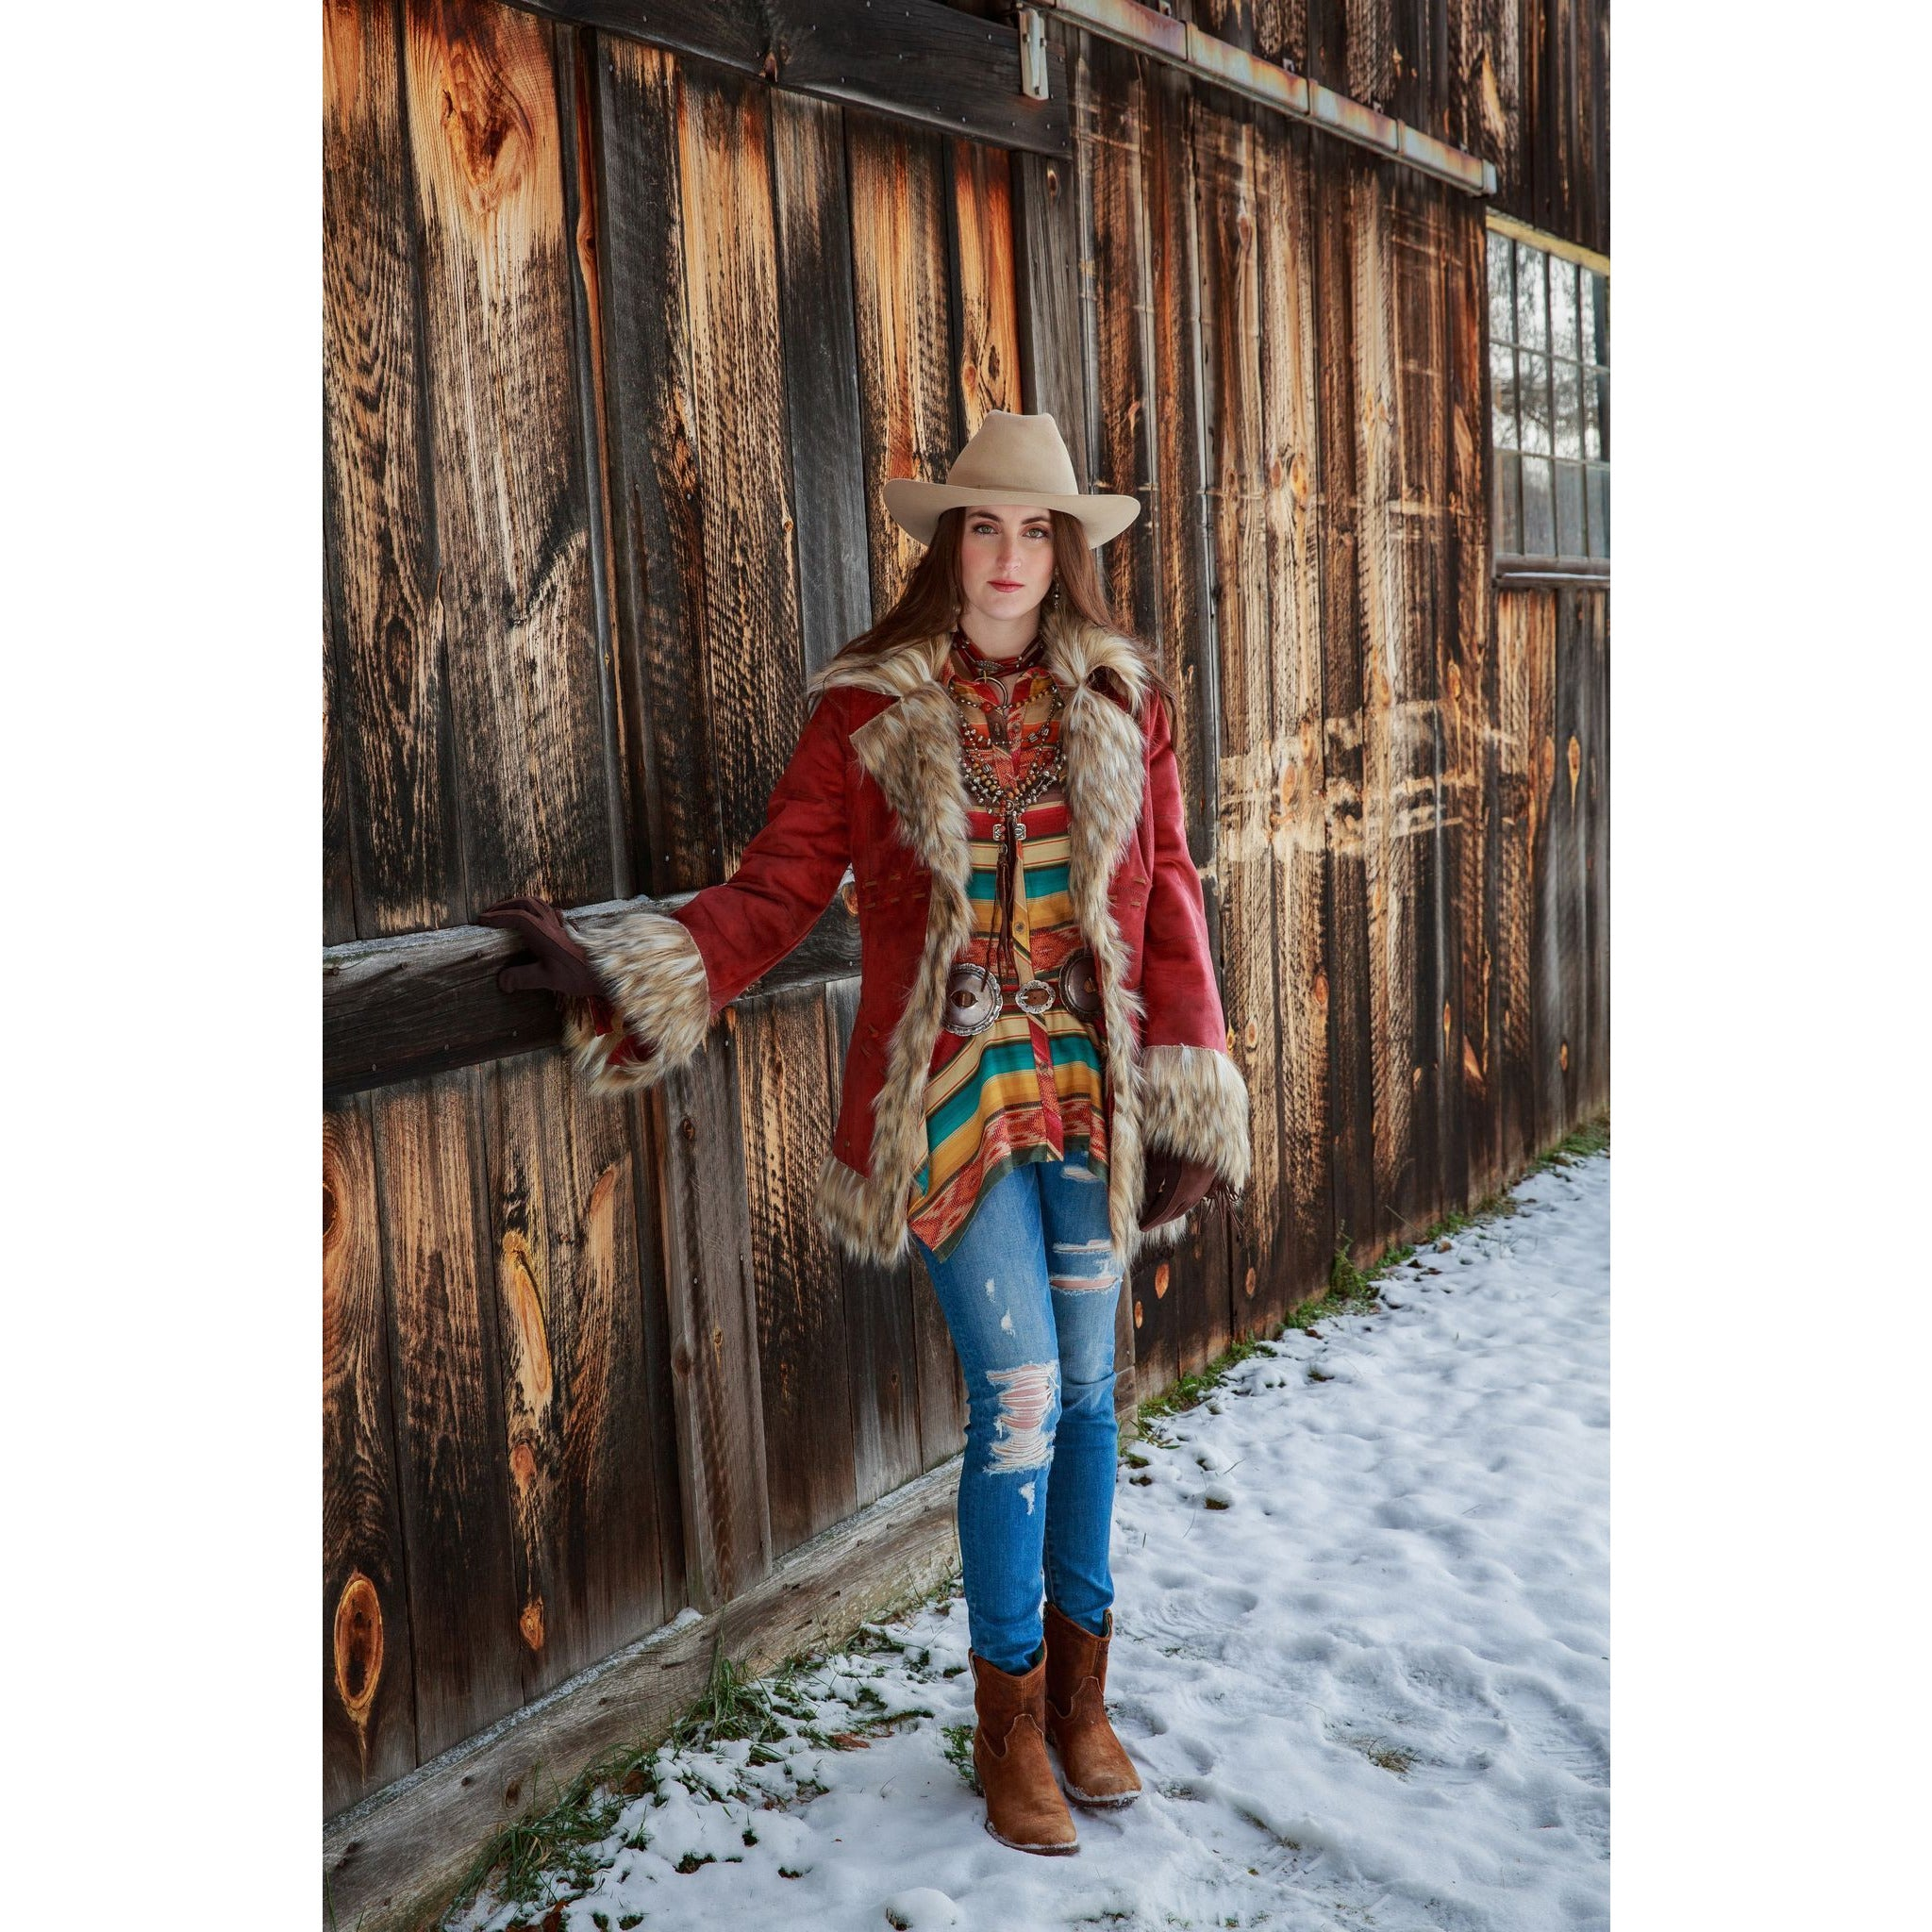 Tasha Polizzi, Maria Serape Button up-Shirt-[Womens_Boutique]-[NFR]-[Rodeo_Fashion]-[Western_Style]-Calamity's LLC